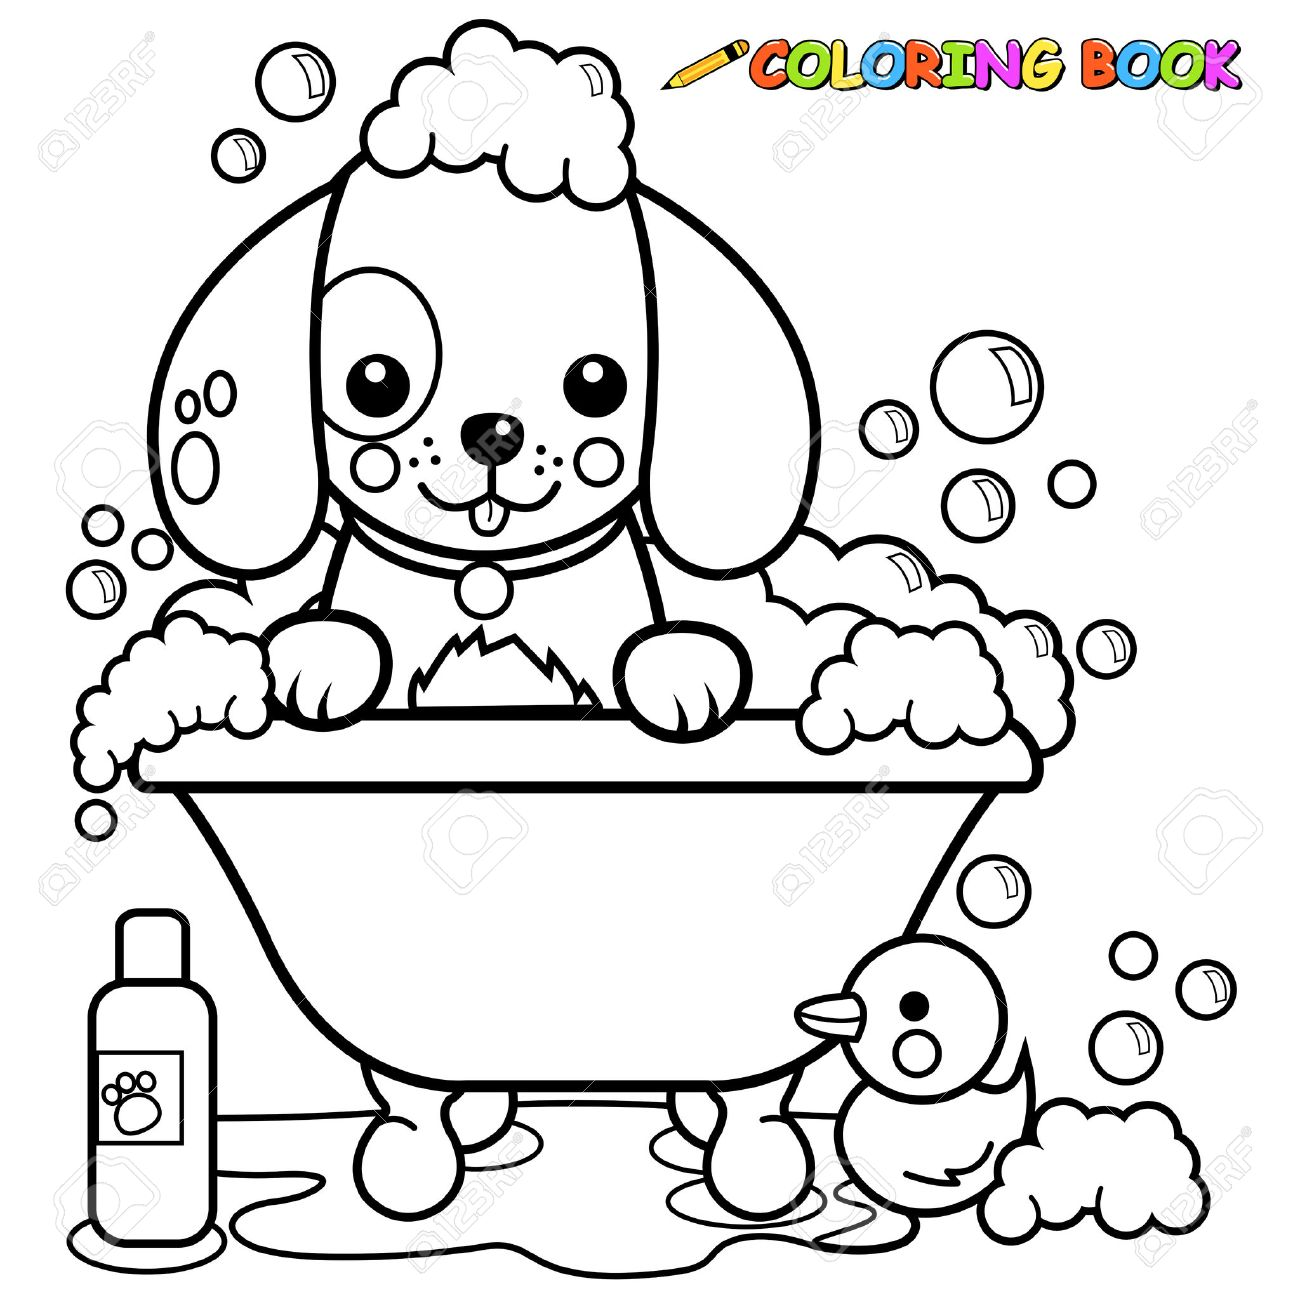 Dog Taking A Bath Coloring Book Page Royalty Free Cliparts ...